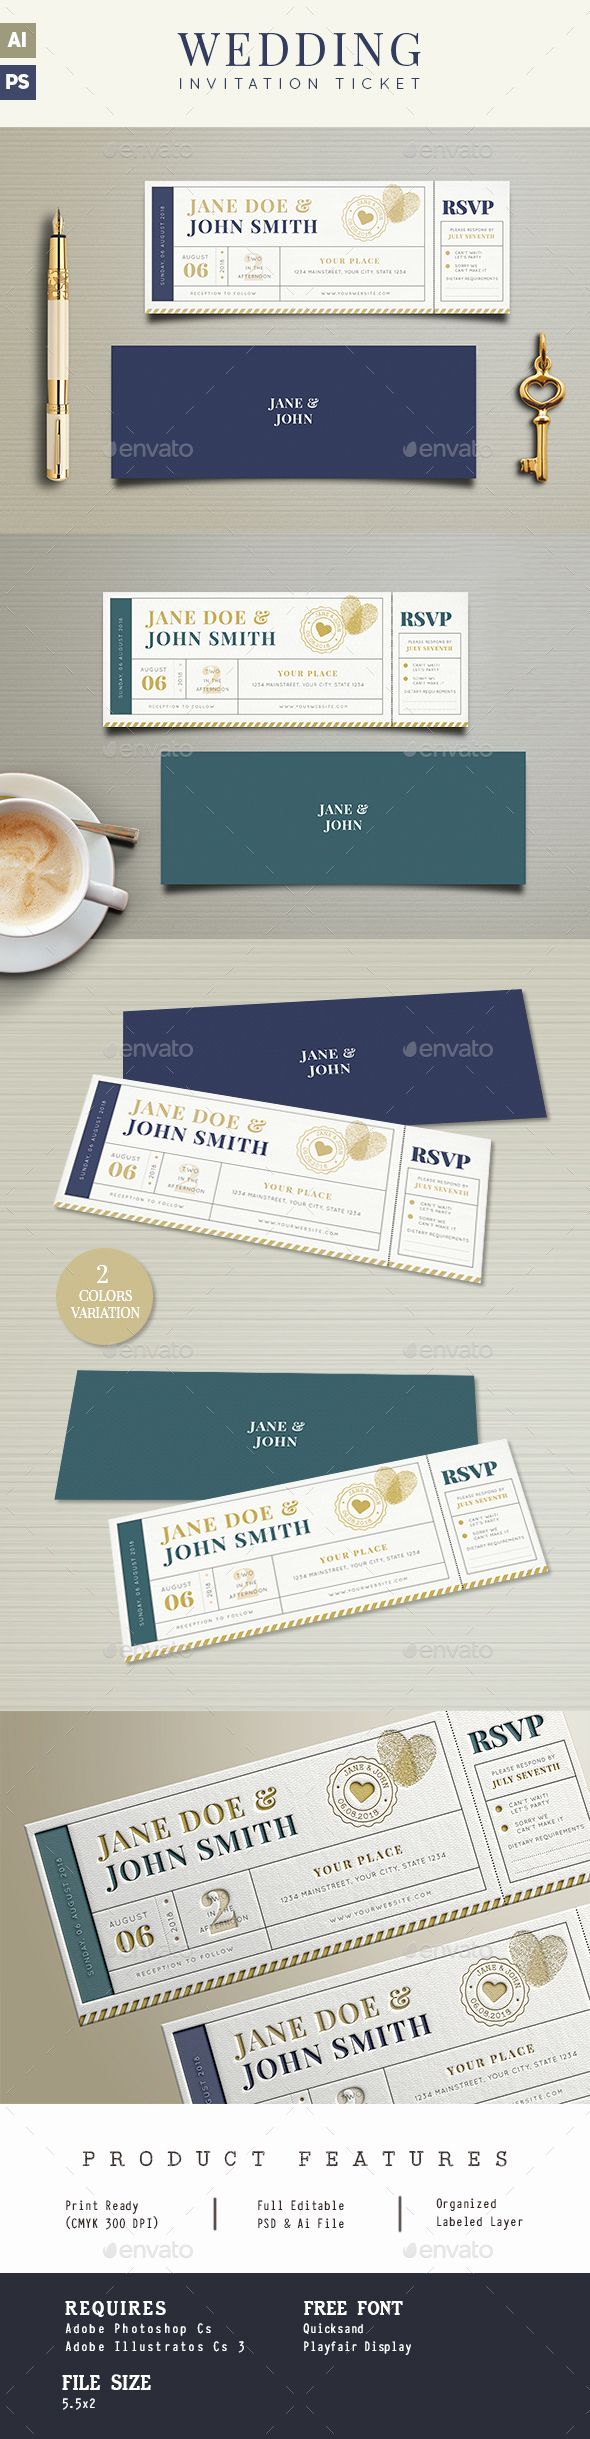 free wedding invitation psd%0A Wedding Invitation Ticket